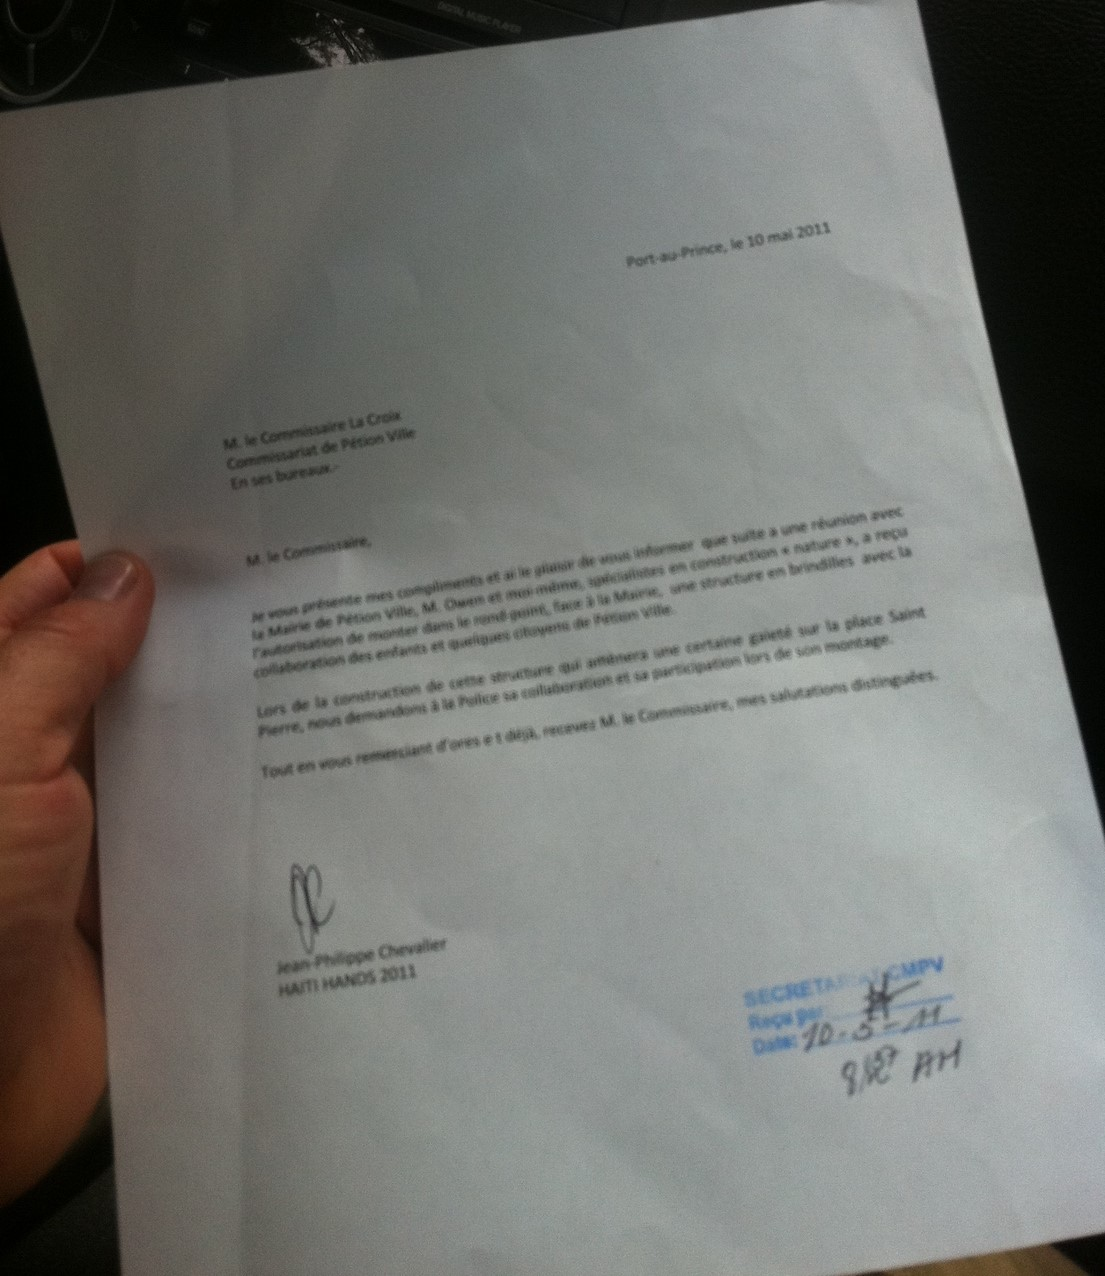 letter from the port au prince mayor allowing use of the park